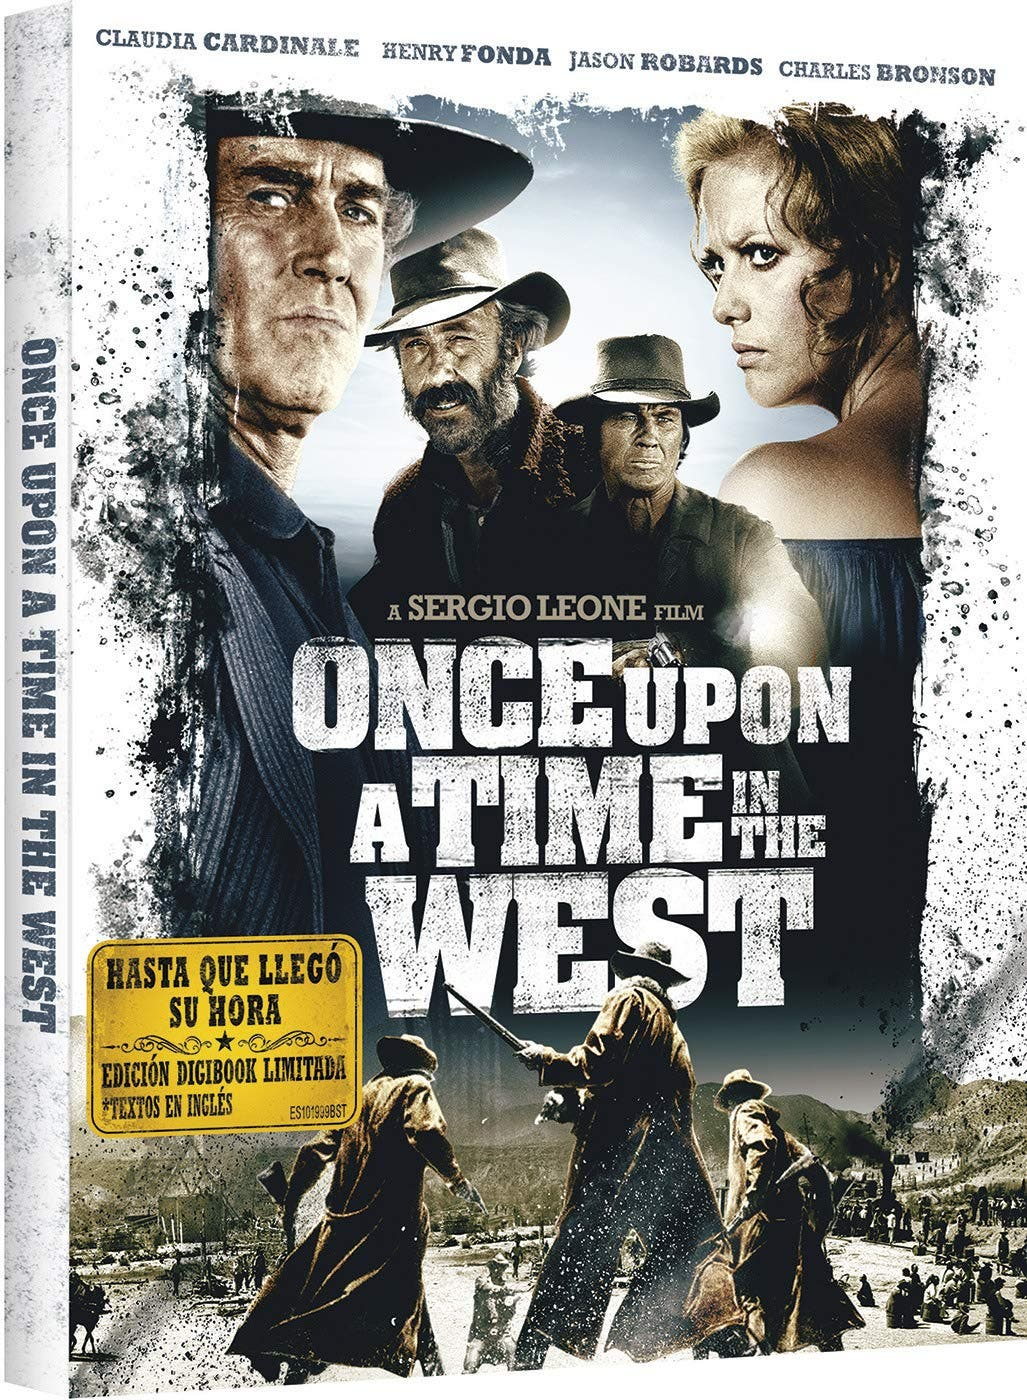 Until His Time: Blu-Ray Digibook